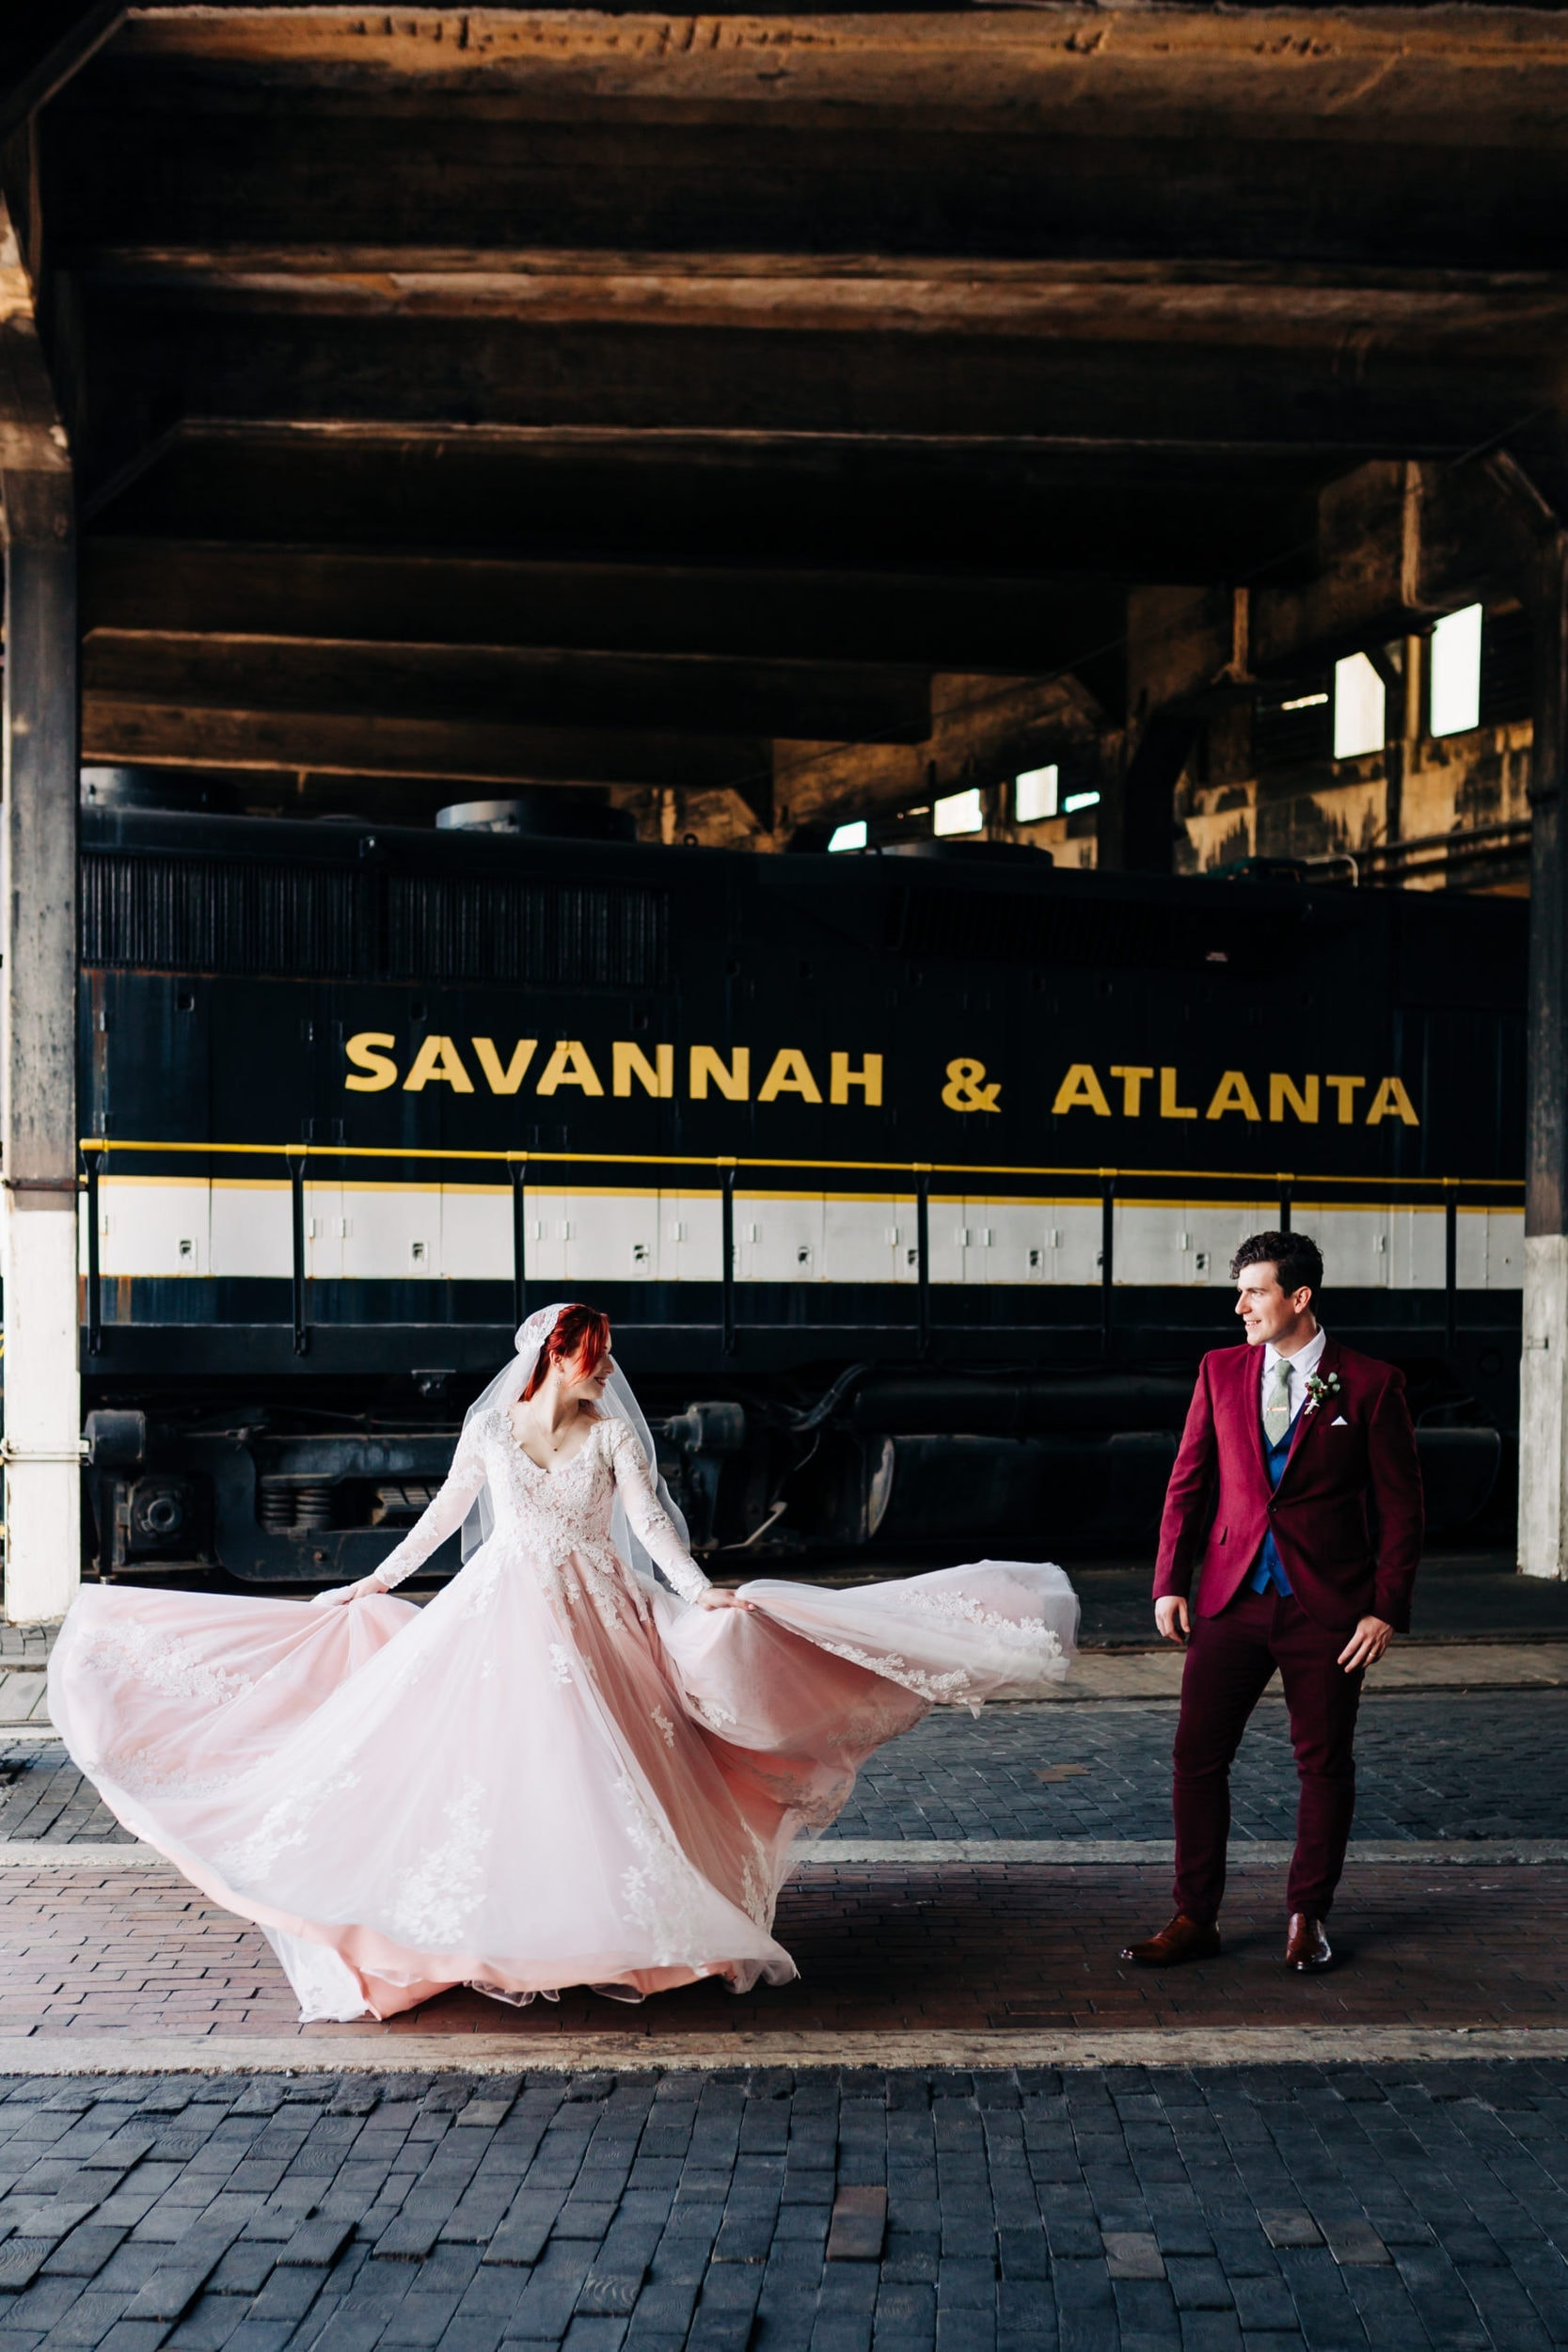 bride in long sleeved blush gown and cathedral veil spinning next to groom in custom fitted maroon suit at the Georgia state railroad museum in savannah